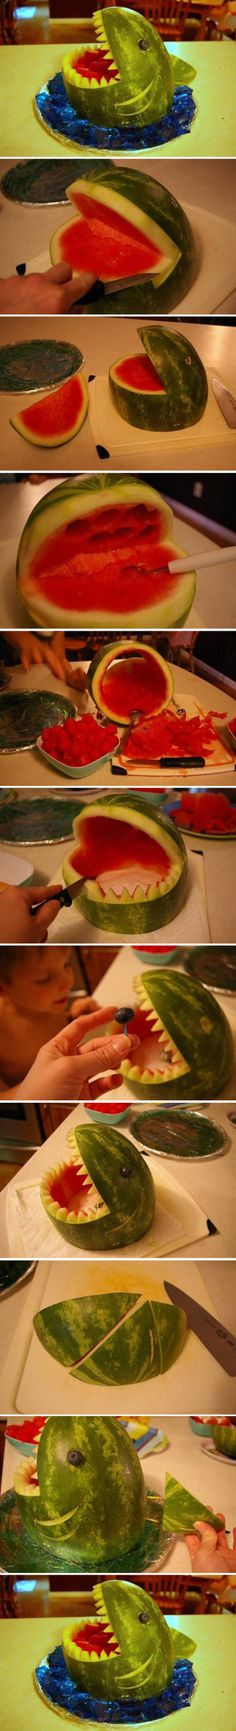 DIY watermelon shark